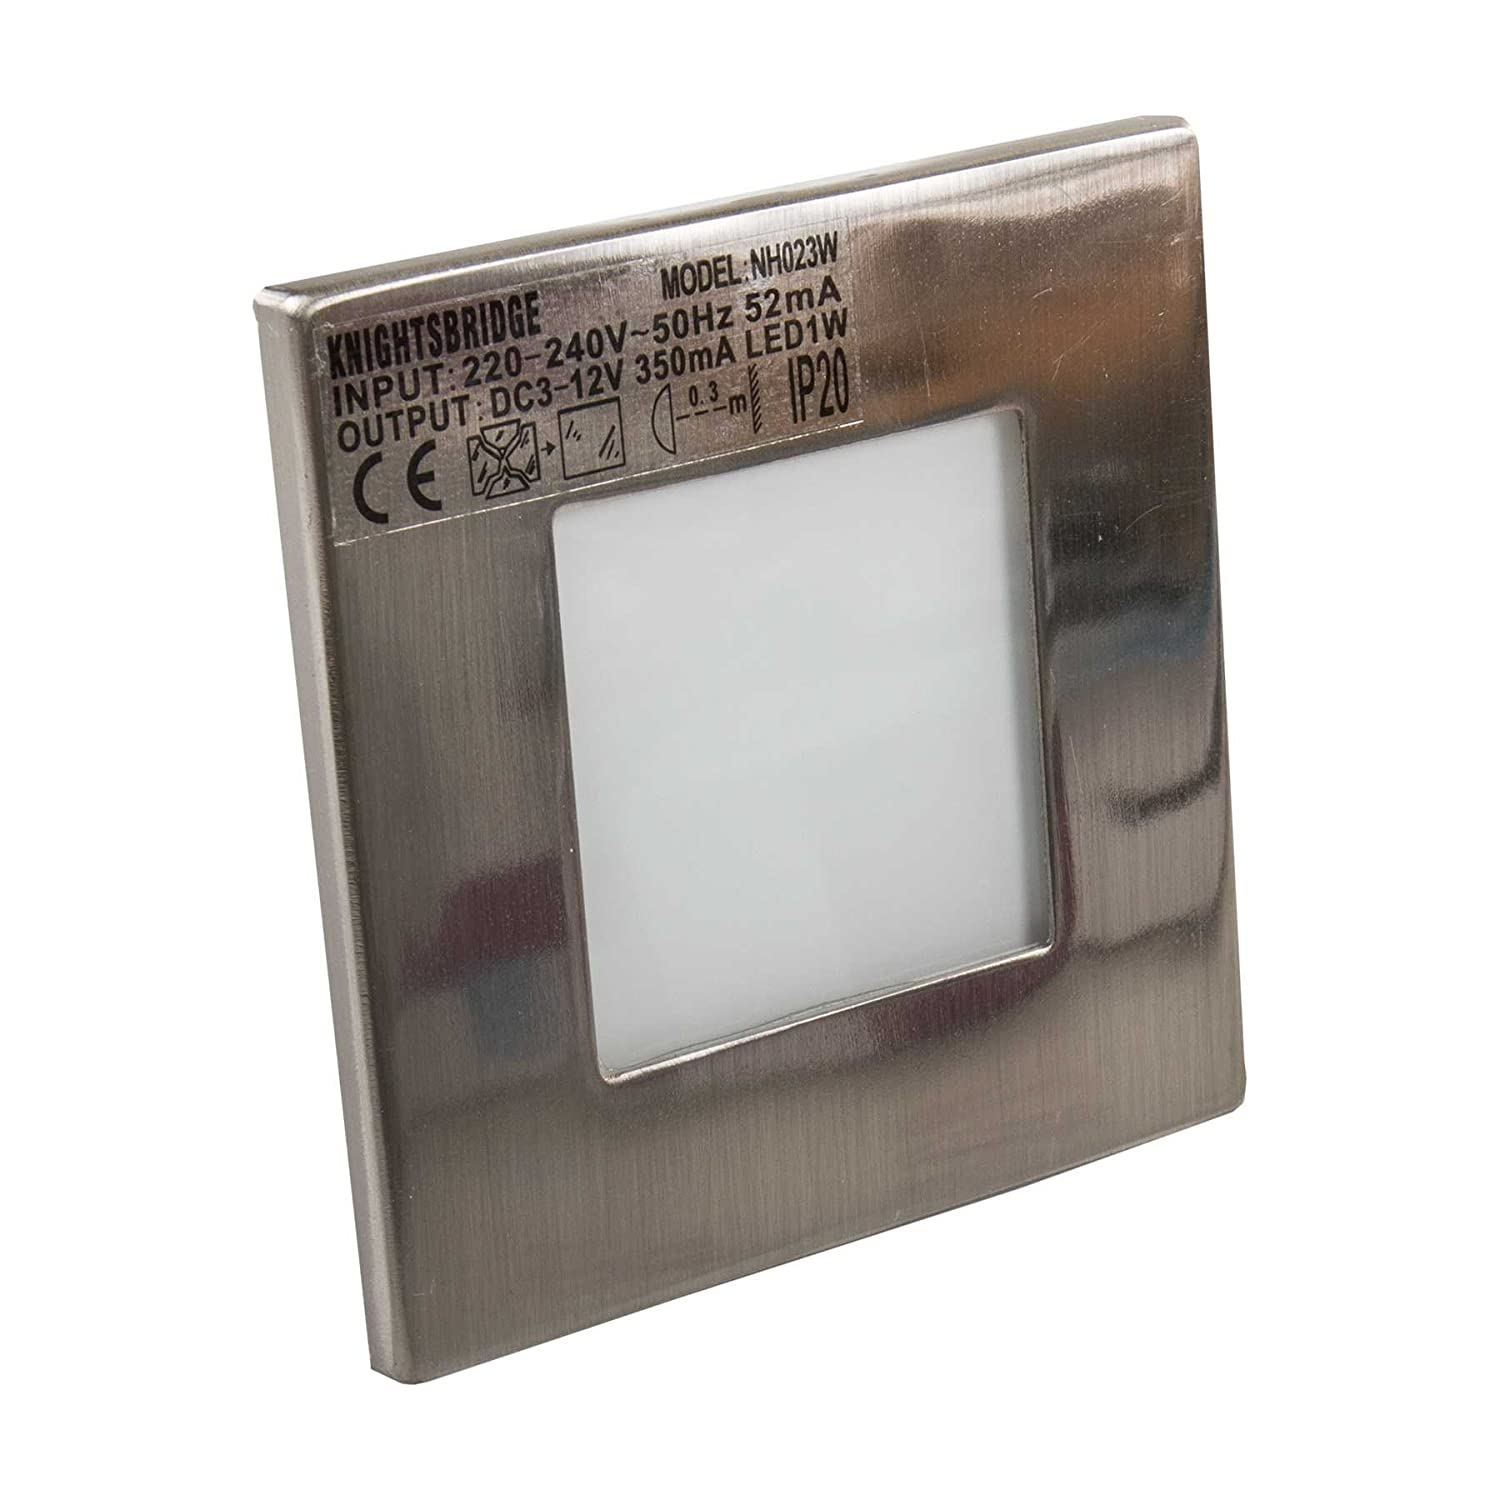 Knightsbridge nh023w stainless steel recessed led wall light knightsbridge nh023w stainless steel recessed led wall light single white amazon lighting aloadofball Image collections